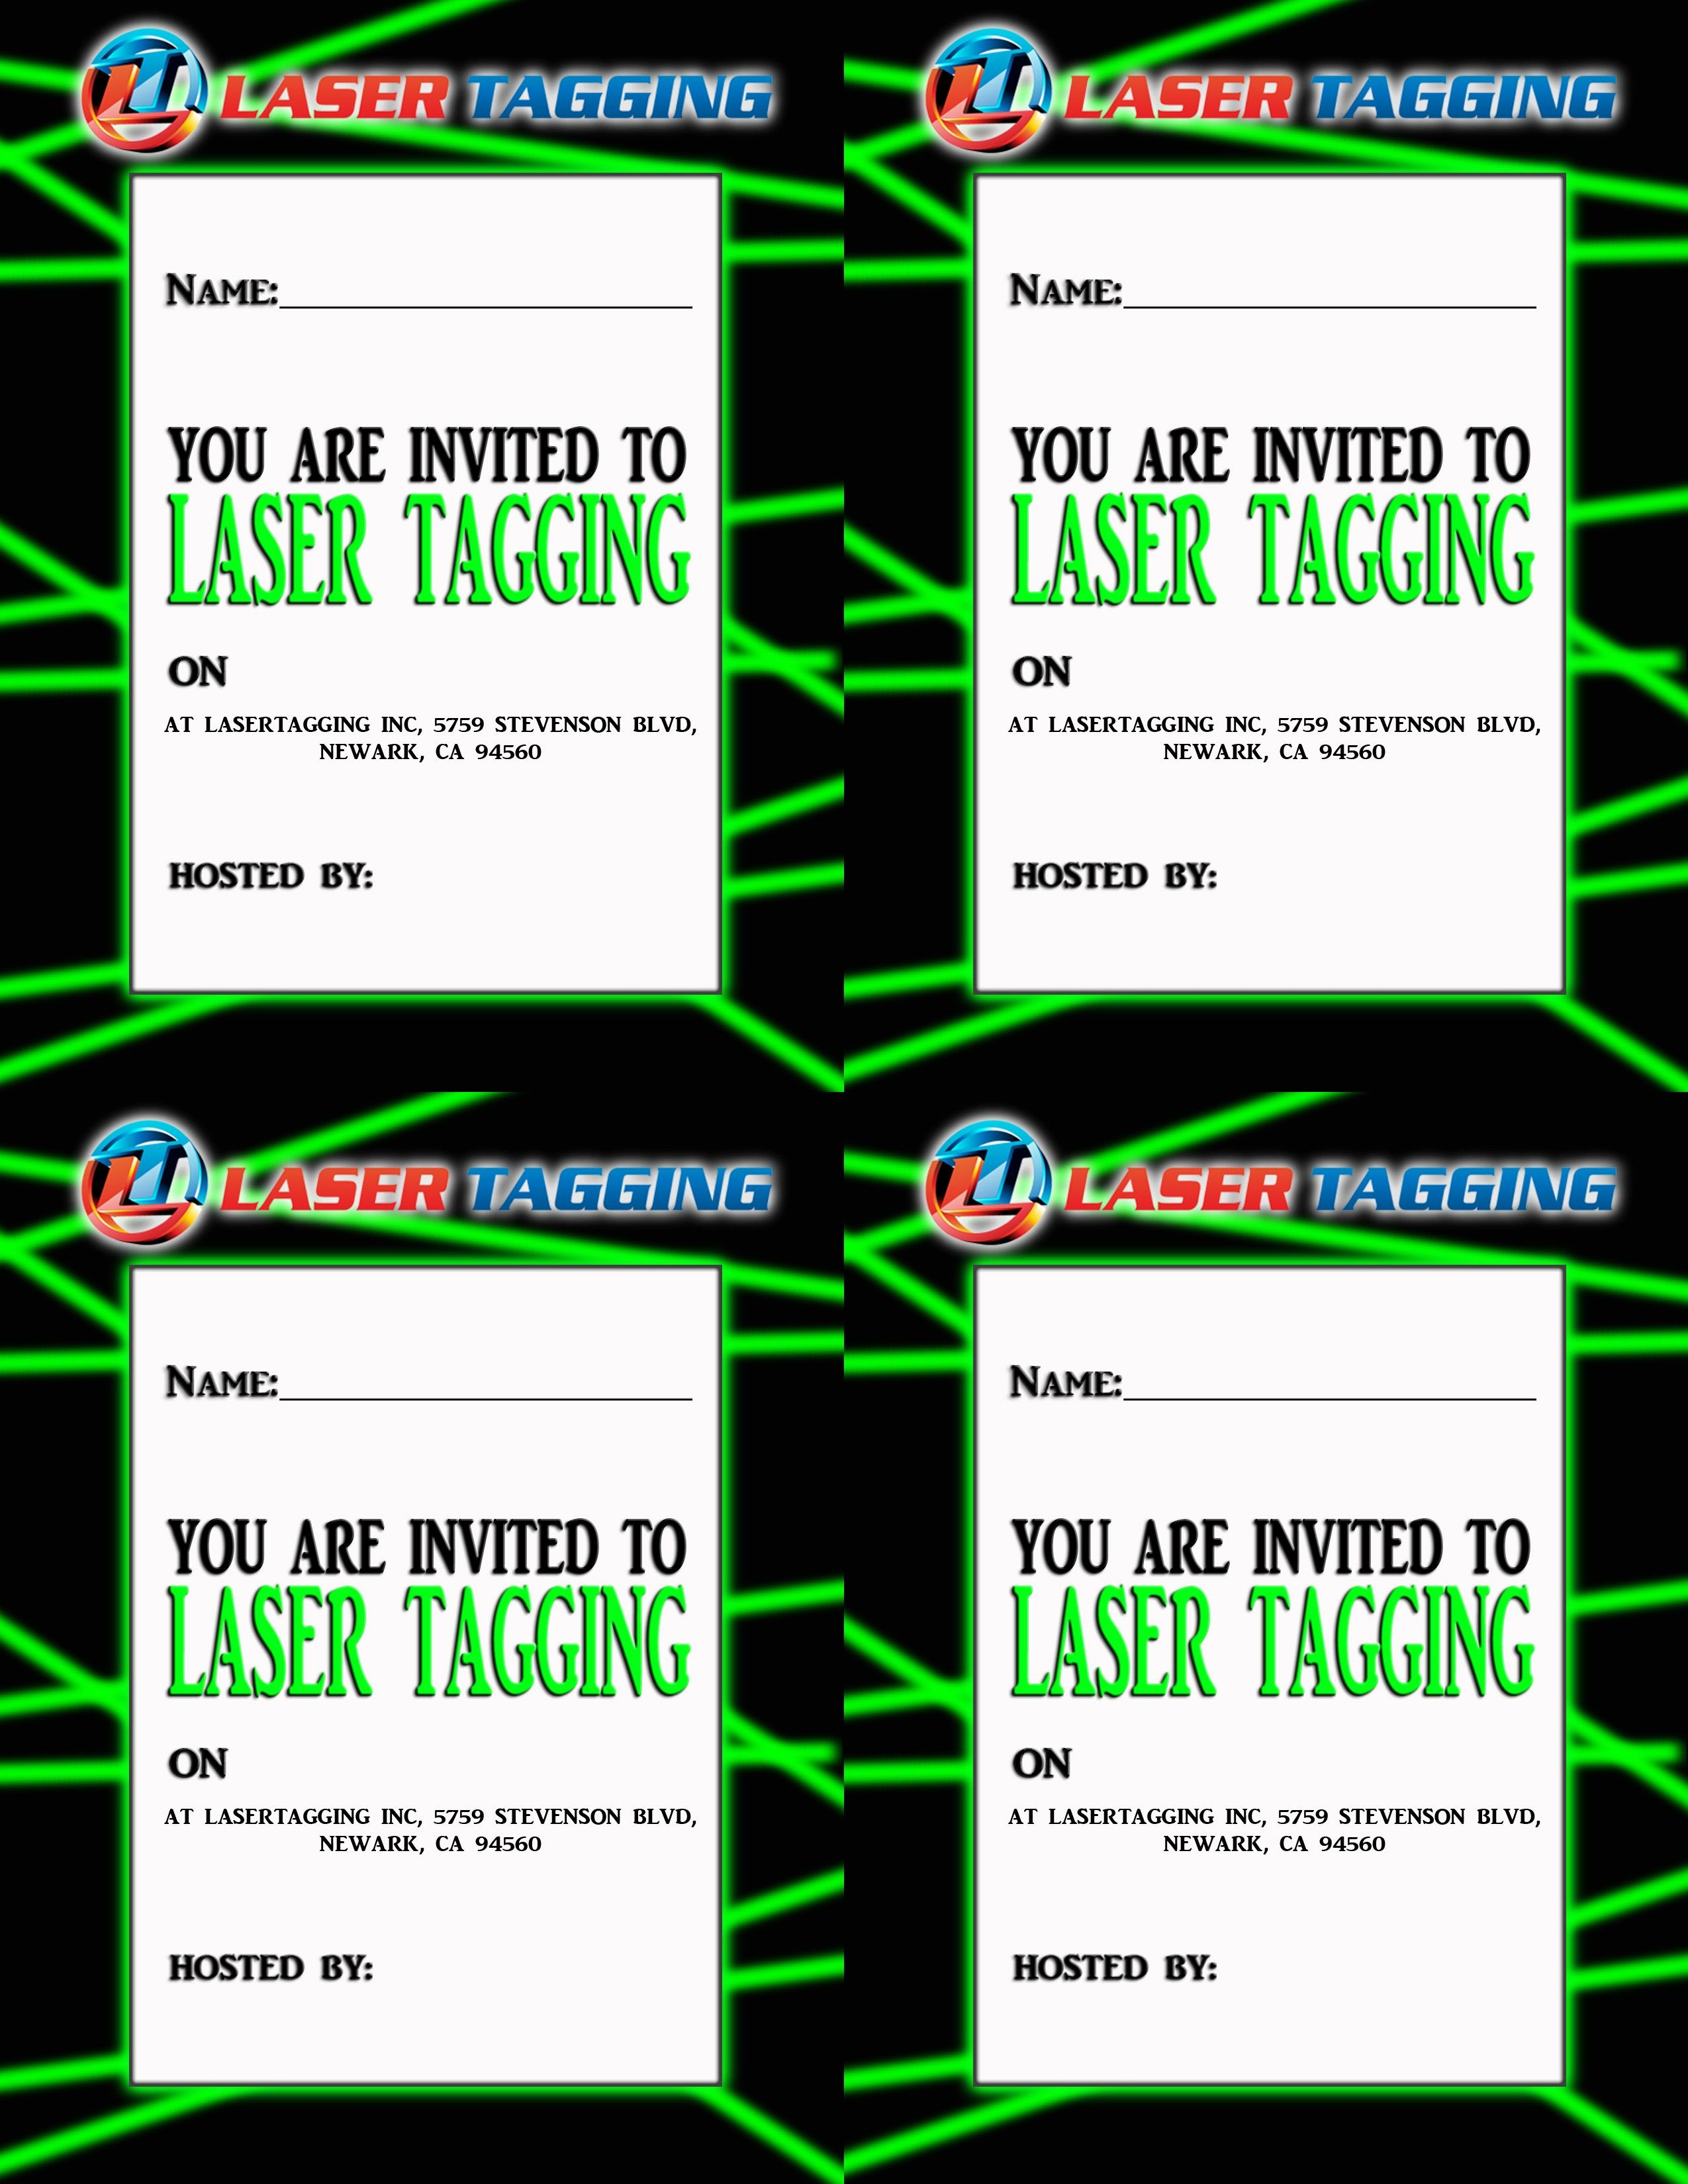 Laser Tag Free Printables | Laser Tag Invitations Printable Free - Free Printable Laser Tag Invitation Template